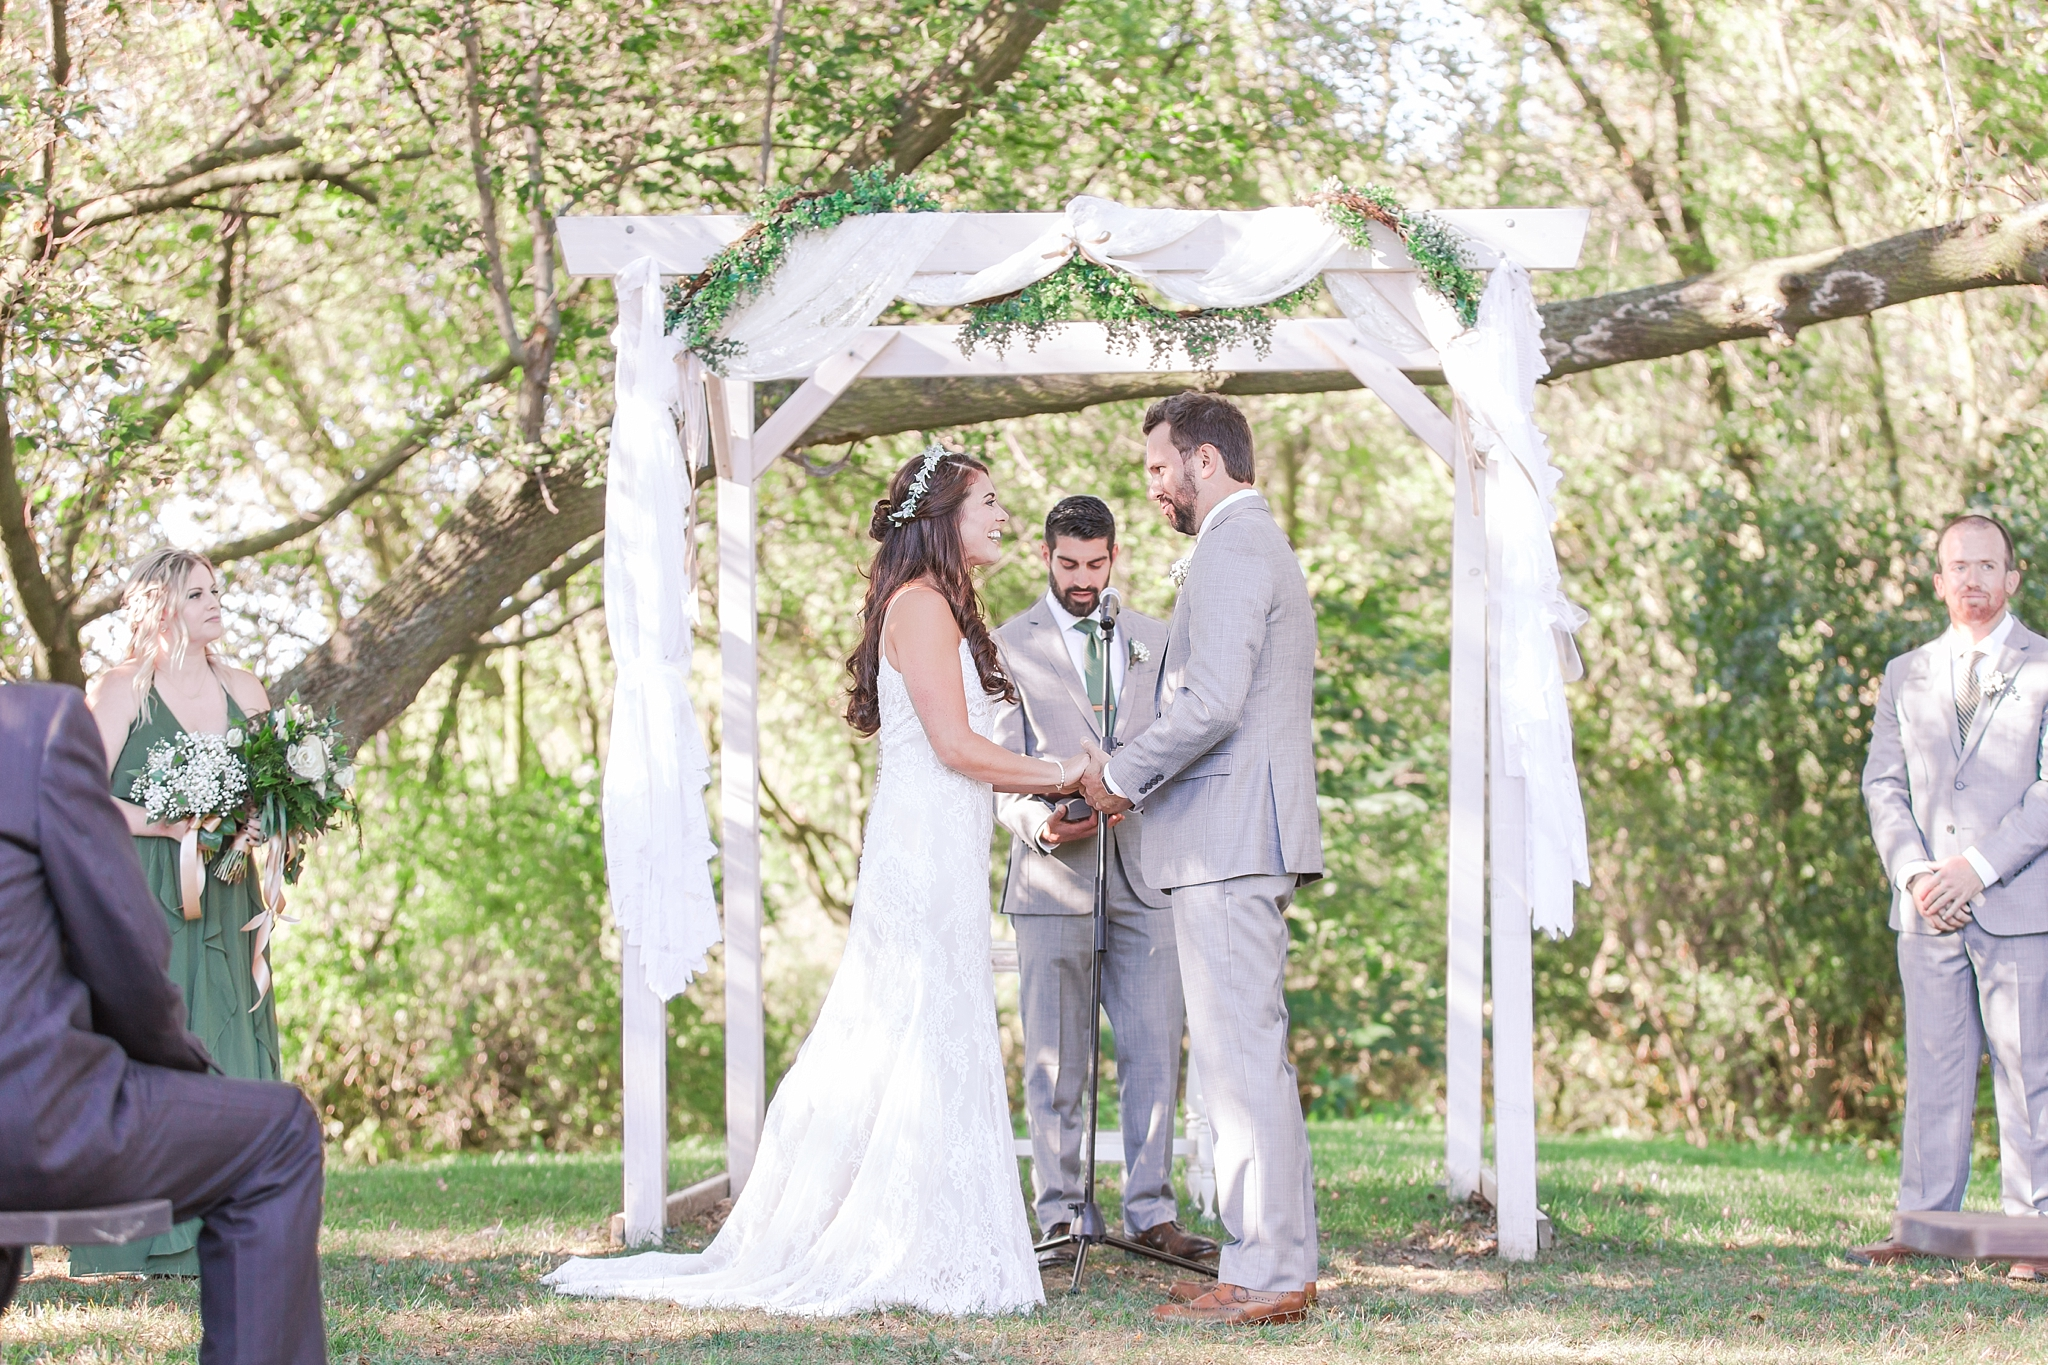 natural-rustic-wedding-photos-at-frutig-farms-the-valley-in-ann-arbor-michigan-by-courtney-carolyn-photography_0060.jpg